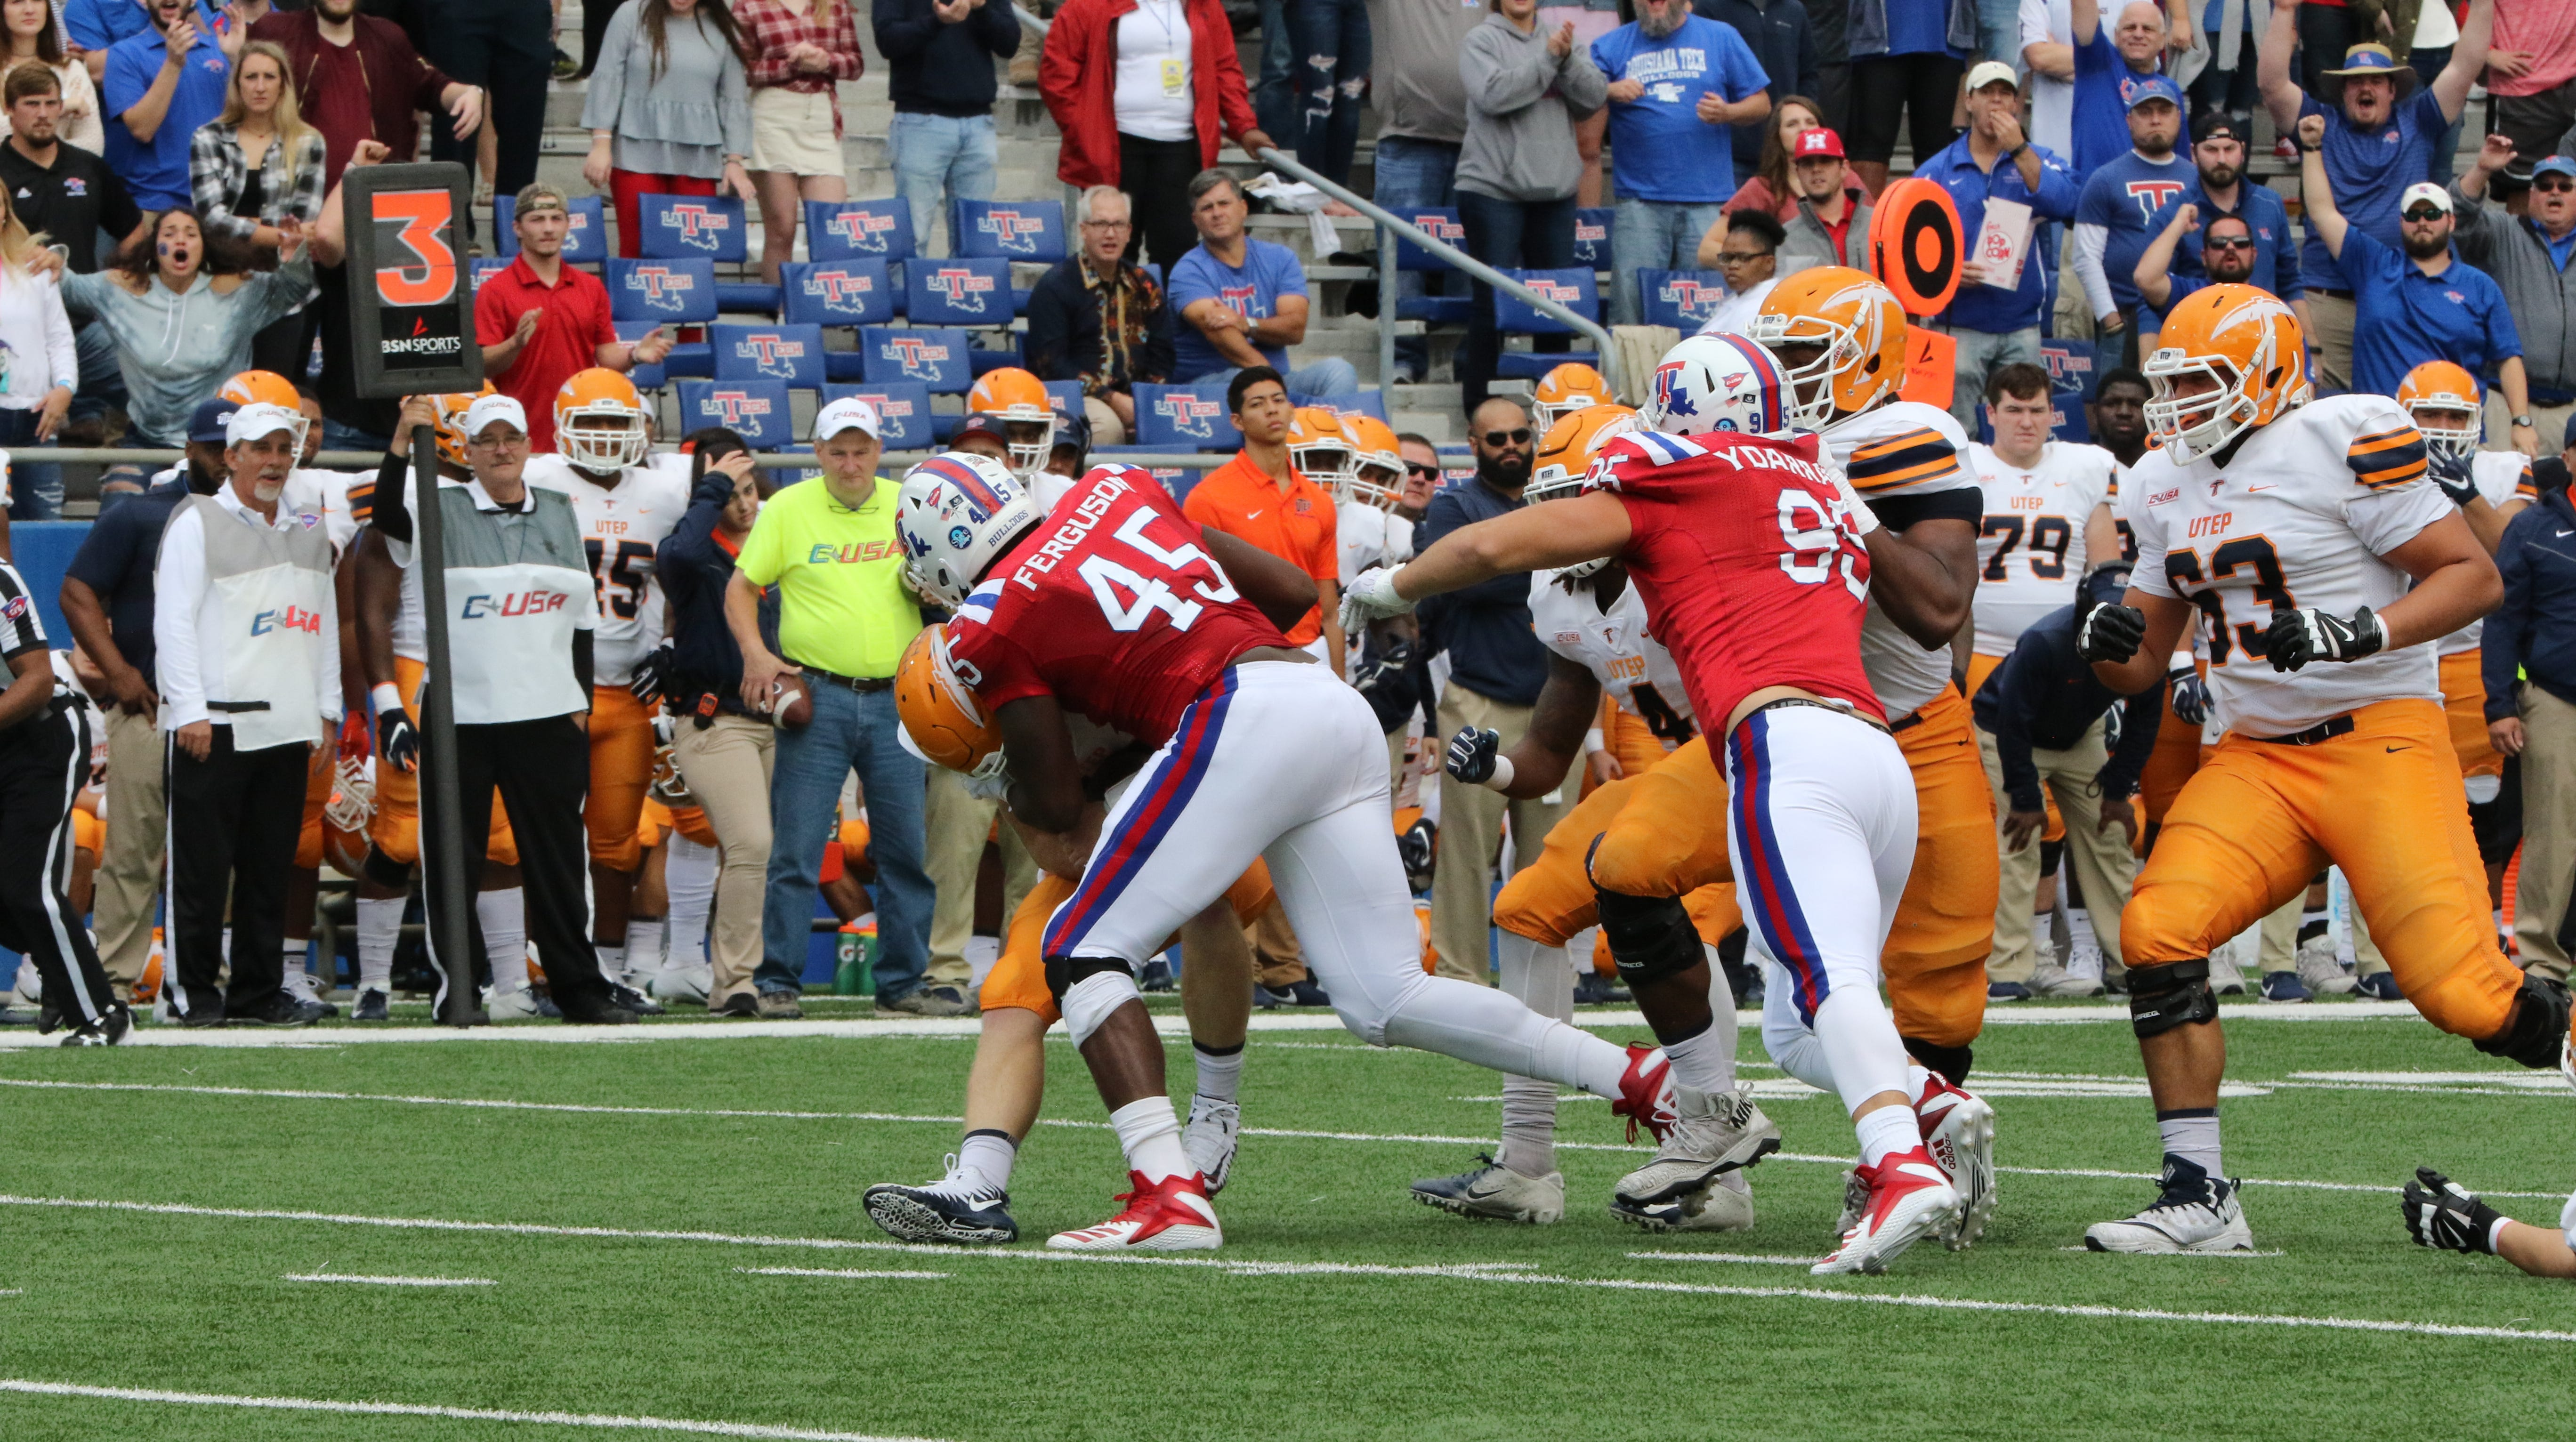 Louisiana Tech escapes winless UTEP on homecoming